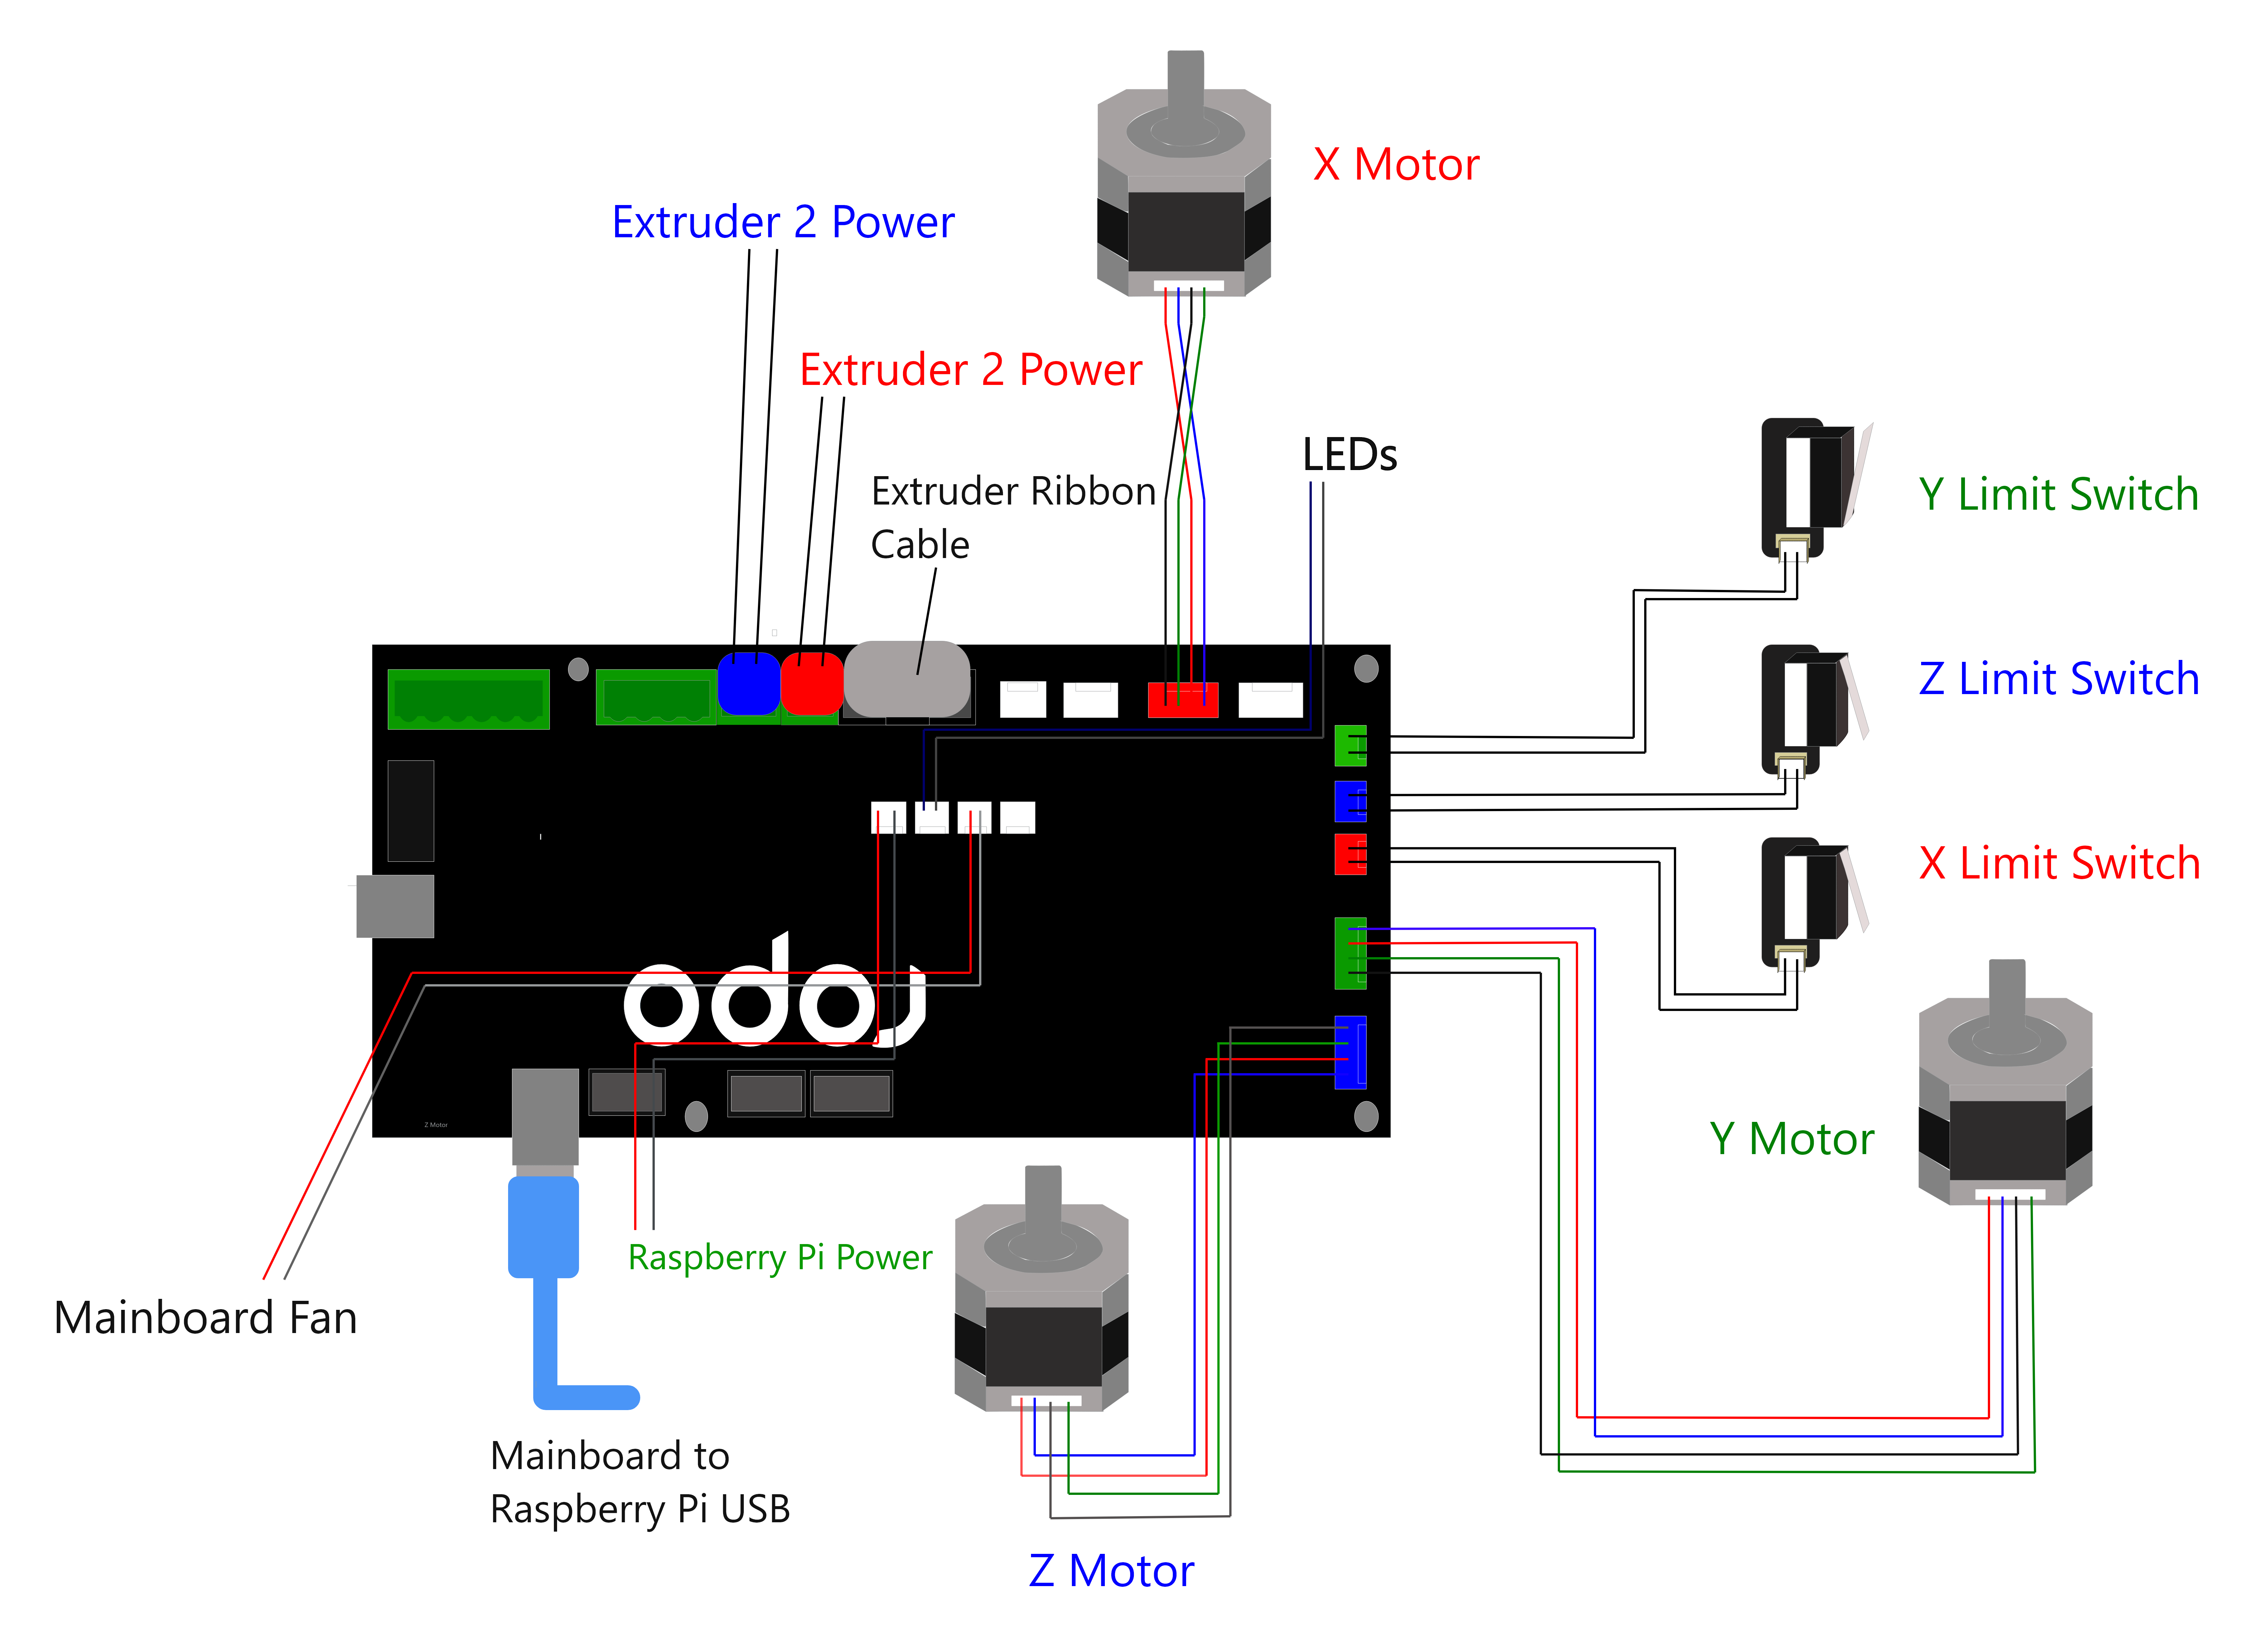 Electronics Mainboard Images And Plug Locations For R2 C2 R1 Motherboard Diagram With Labels Quotes Artboard 1